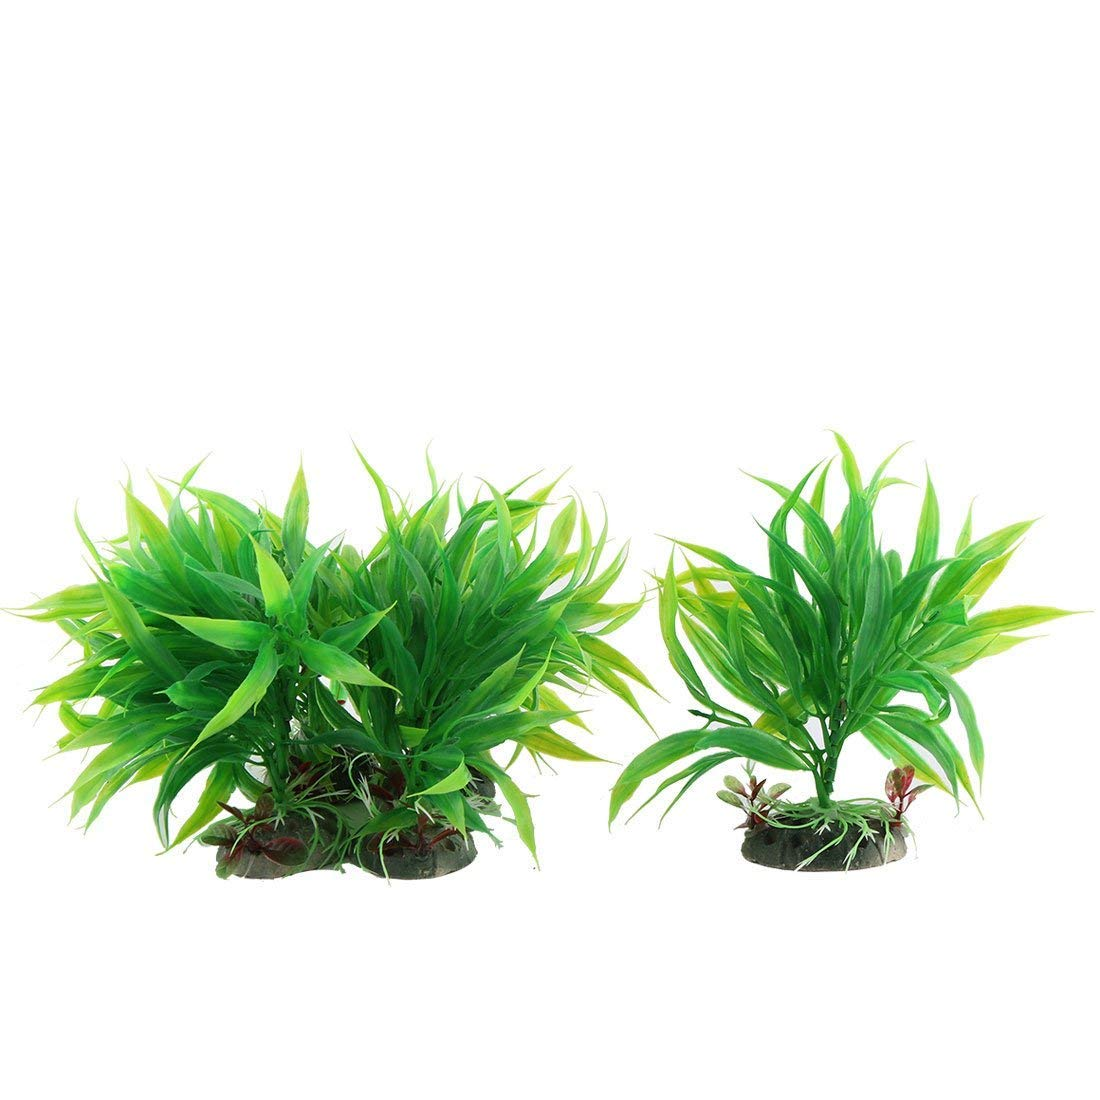 1Pc Aquarium Artificial Water Grass Plants Decor 10cm Height 10 in 1